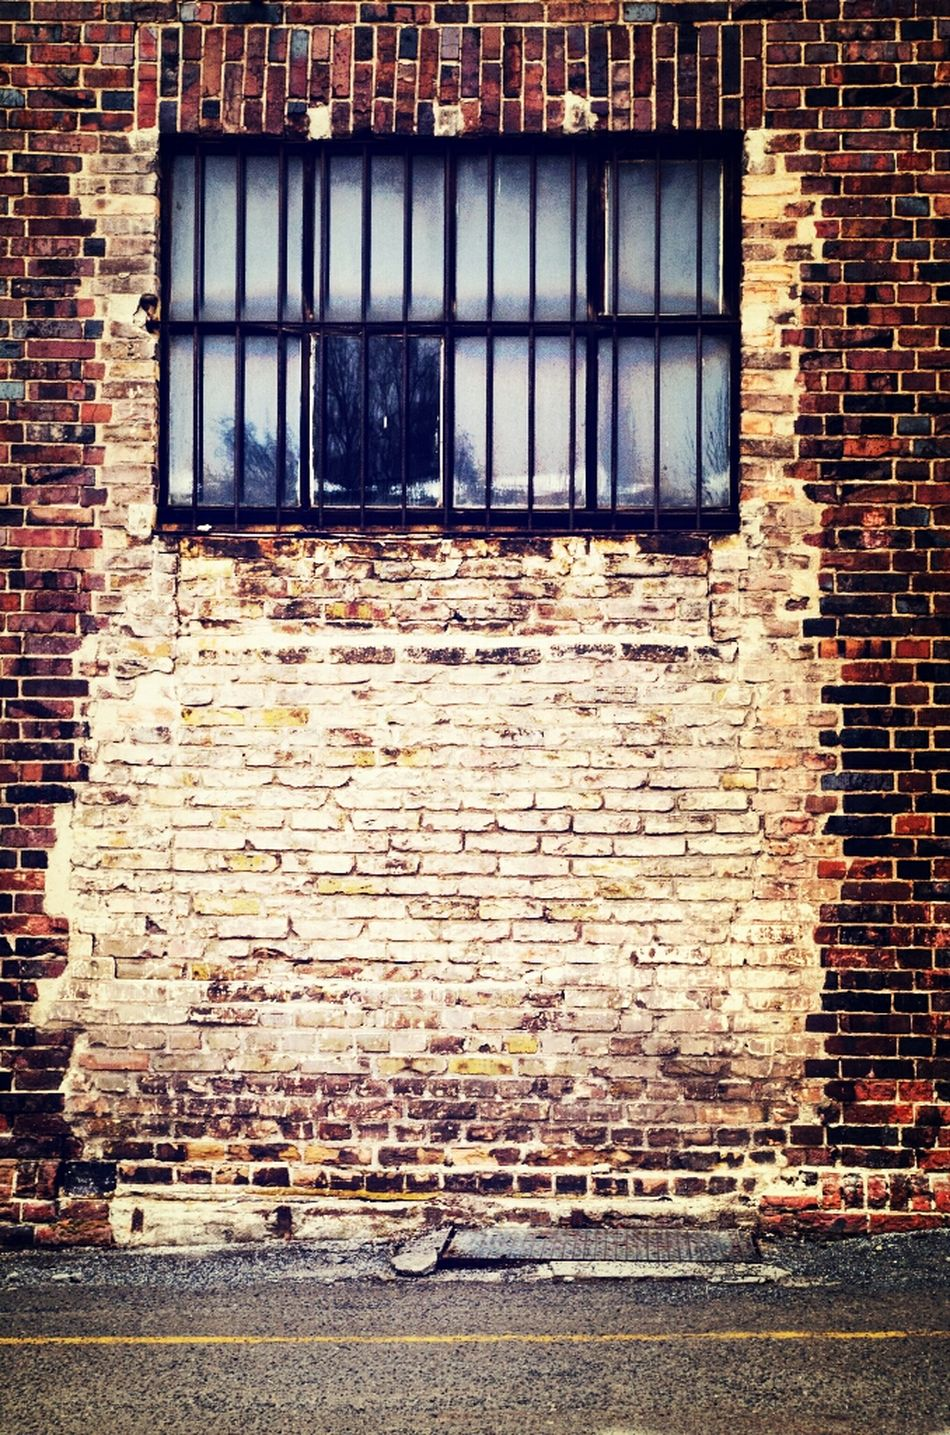 Bricks Grimescene Grimewindow